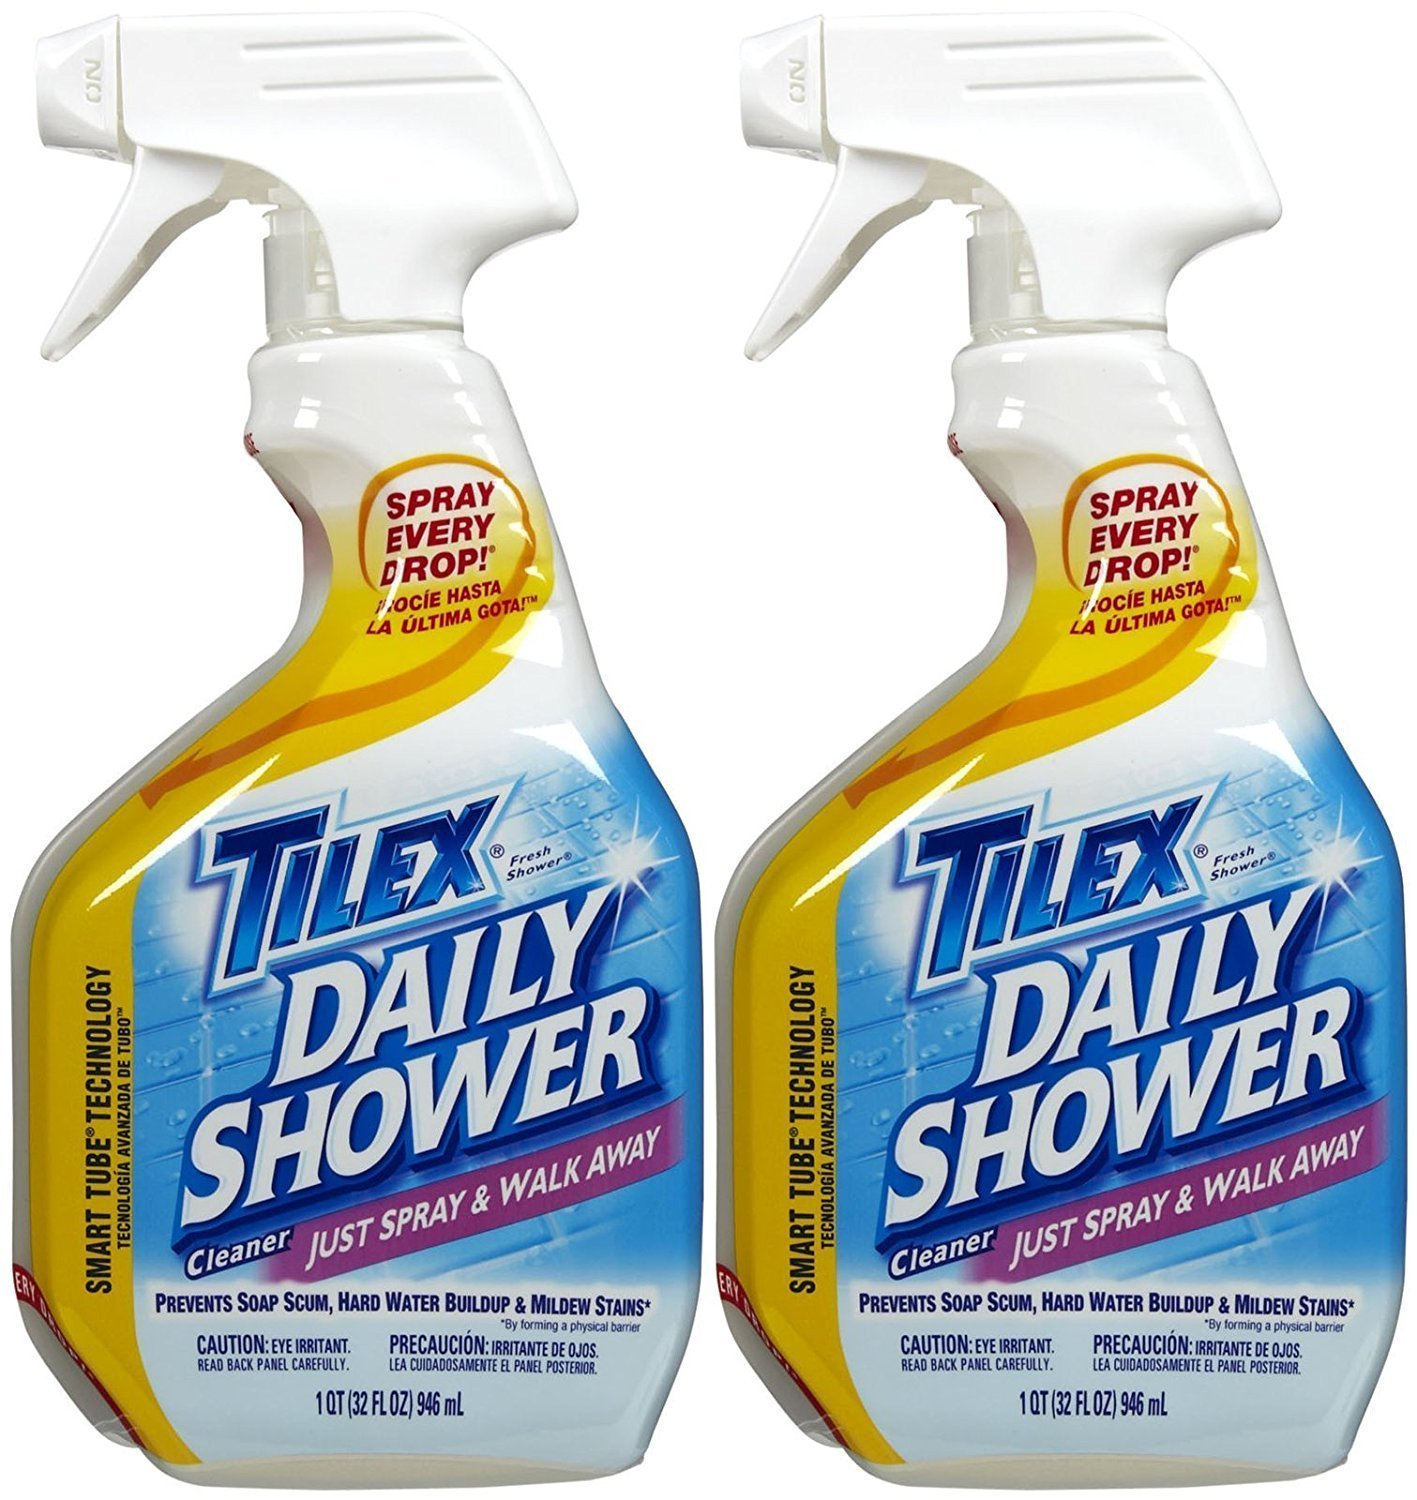 Amazon.com: Tilex Fresh Shower, Daily Shower Refill - 64